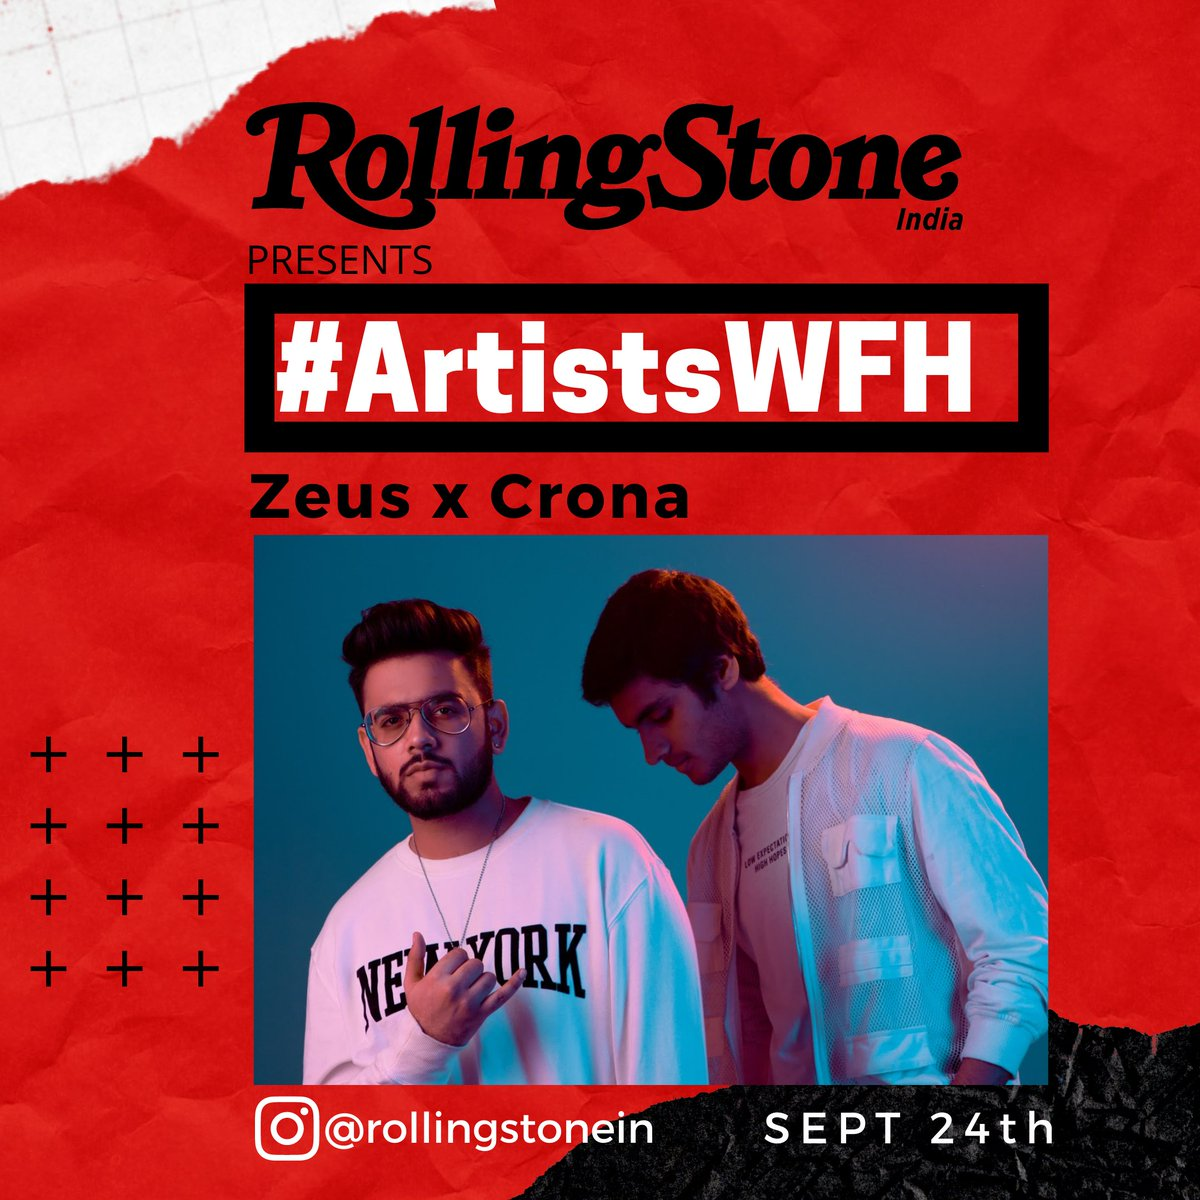 Electronic music duo @CronaZeus will be taking over our Instagram stories tomorrow as part of our #ArtistsWFH series. Tune in to watch how they spend their time best while working at home https://t.co/AGC6y349bQ